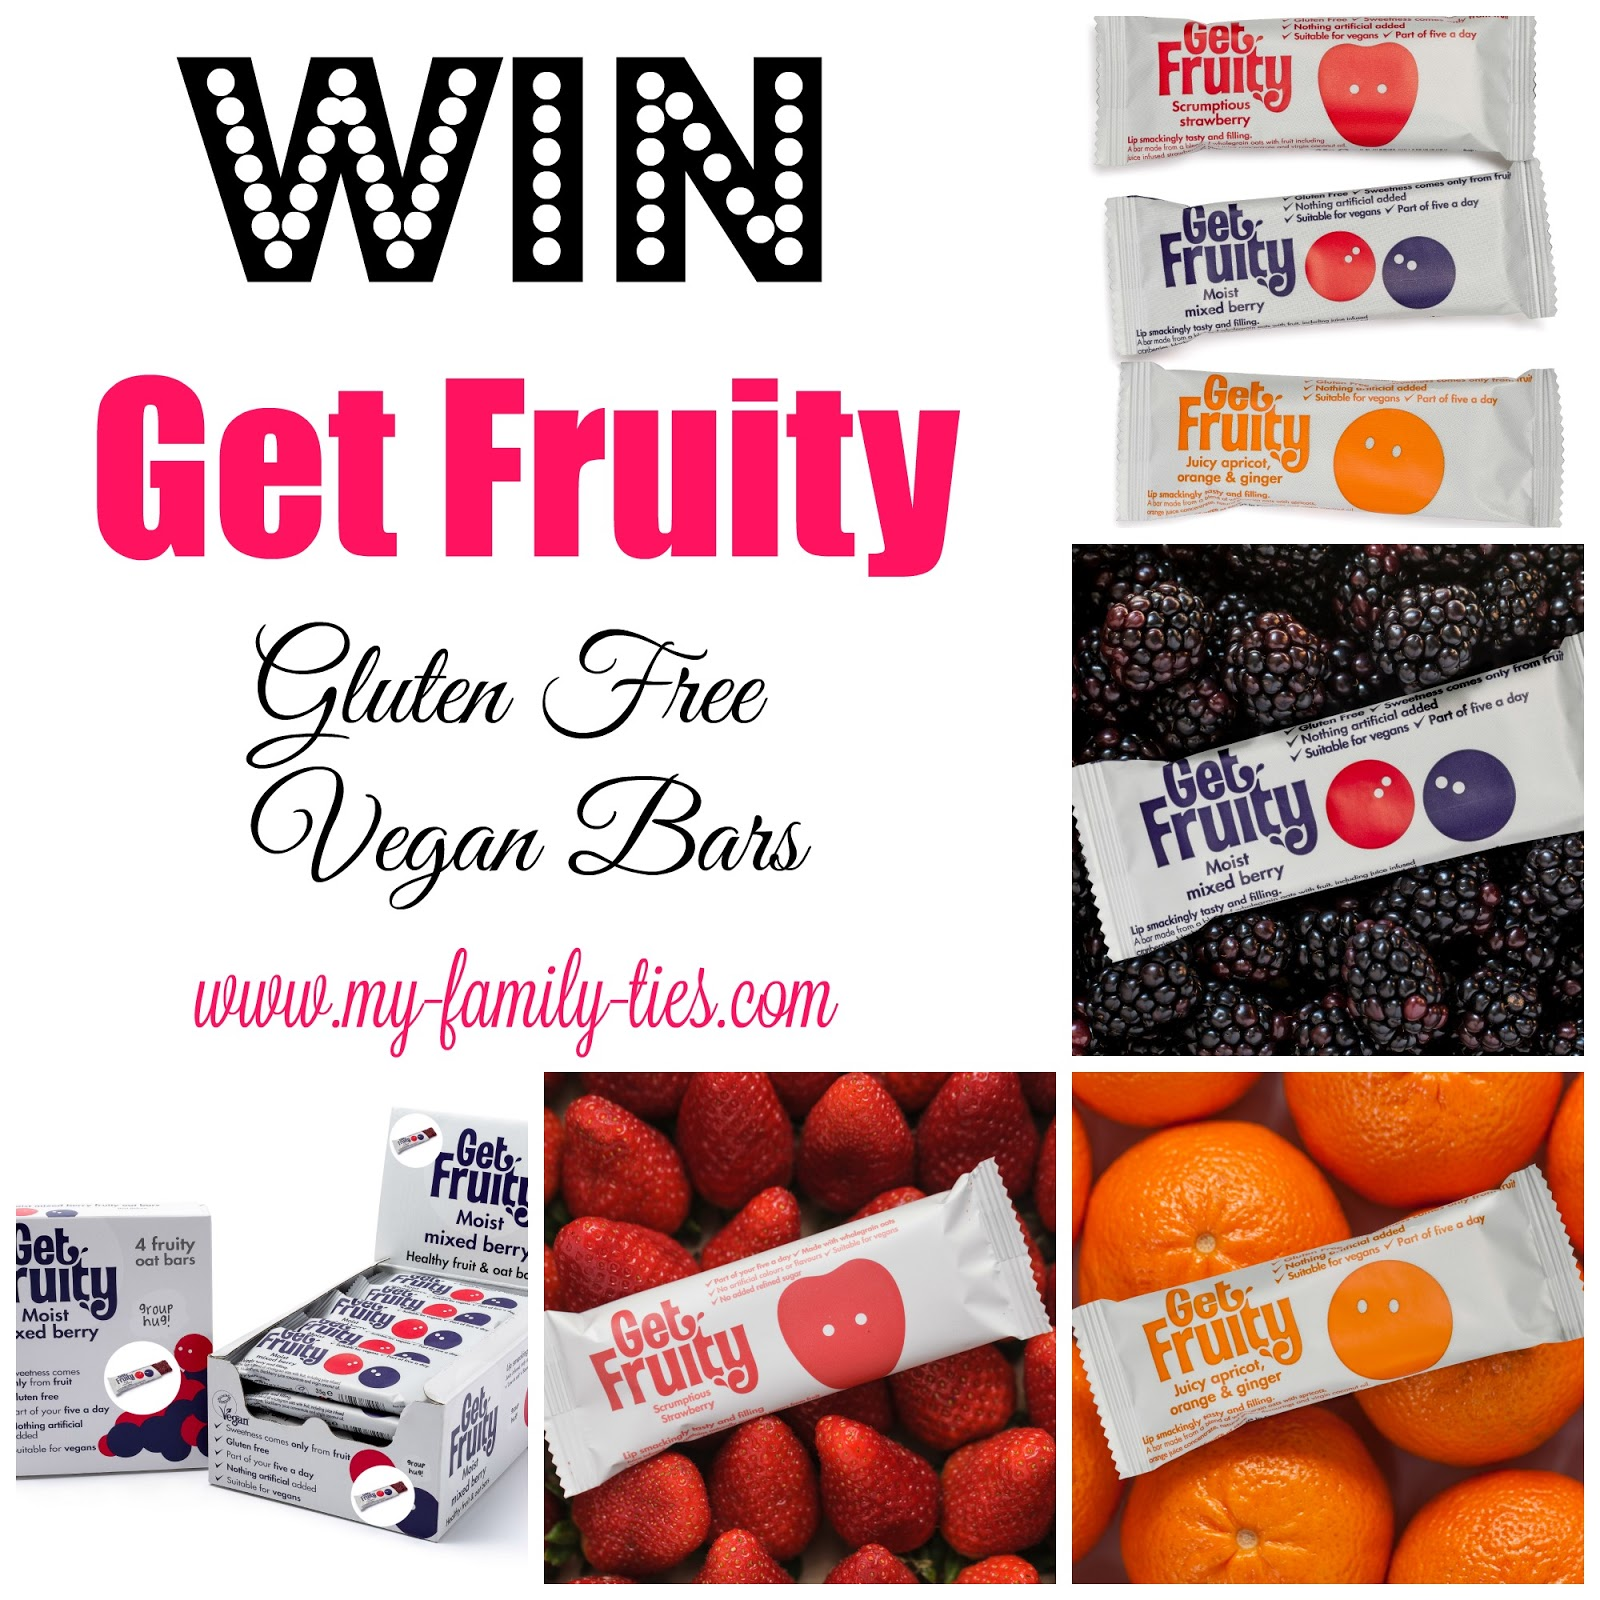 Get Fruity Competition To Win A Box Of Sugar Free, Vegan Bars With My Family Ties Blog www.my-family-ties.com